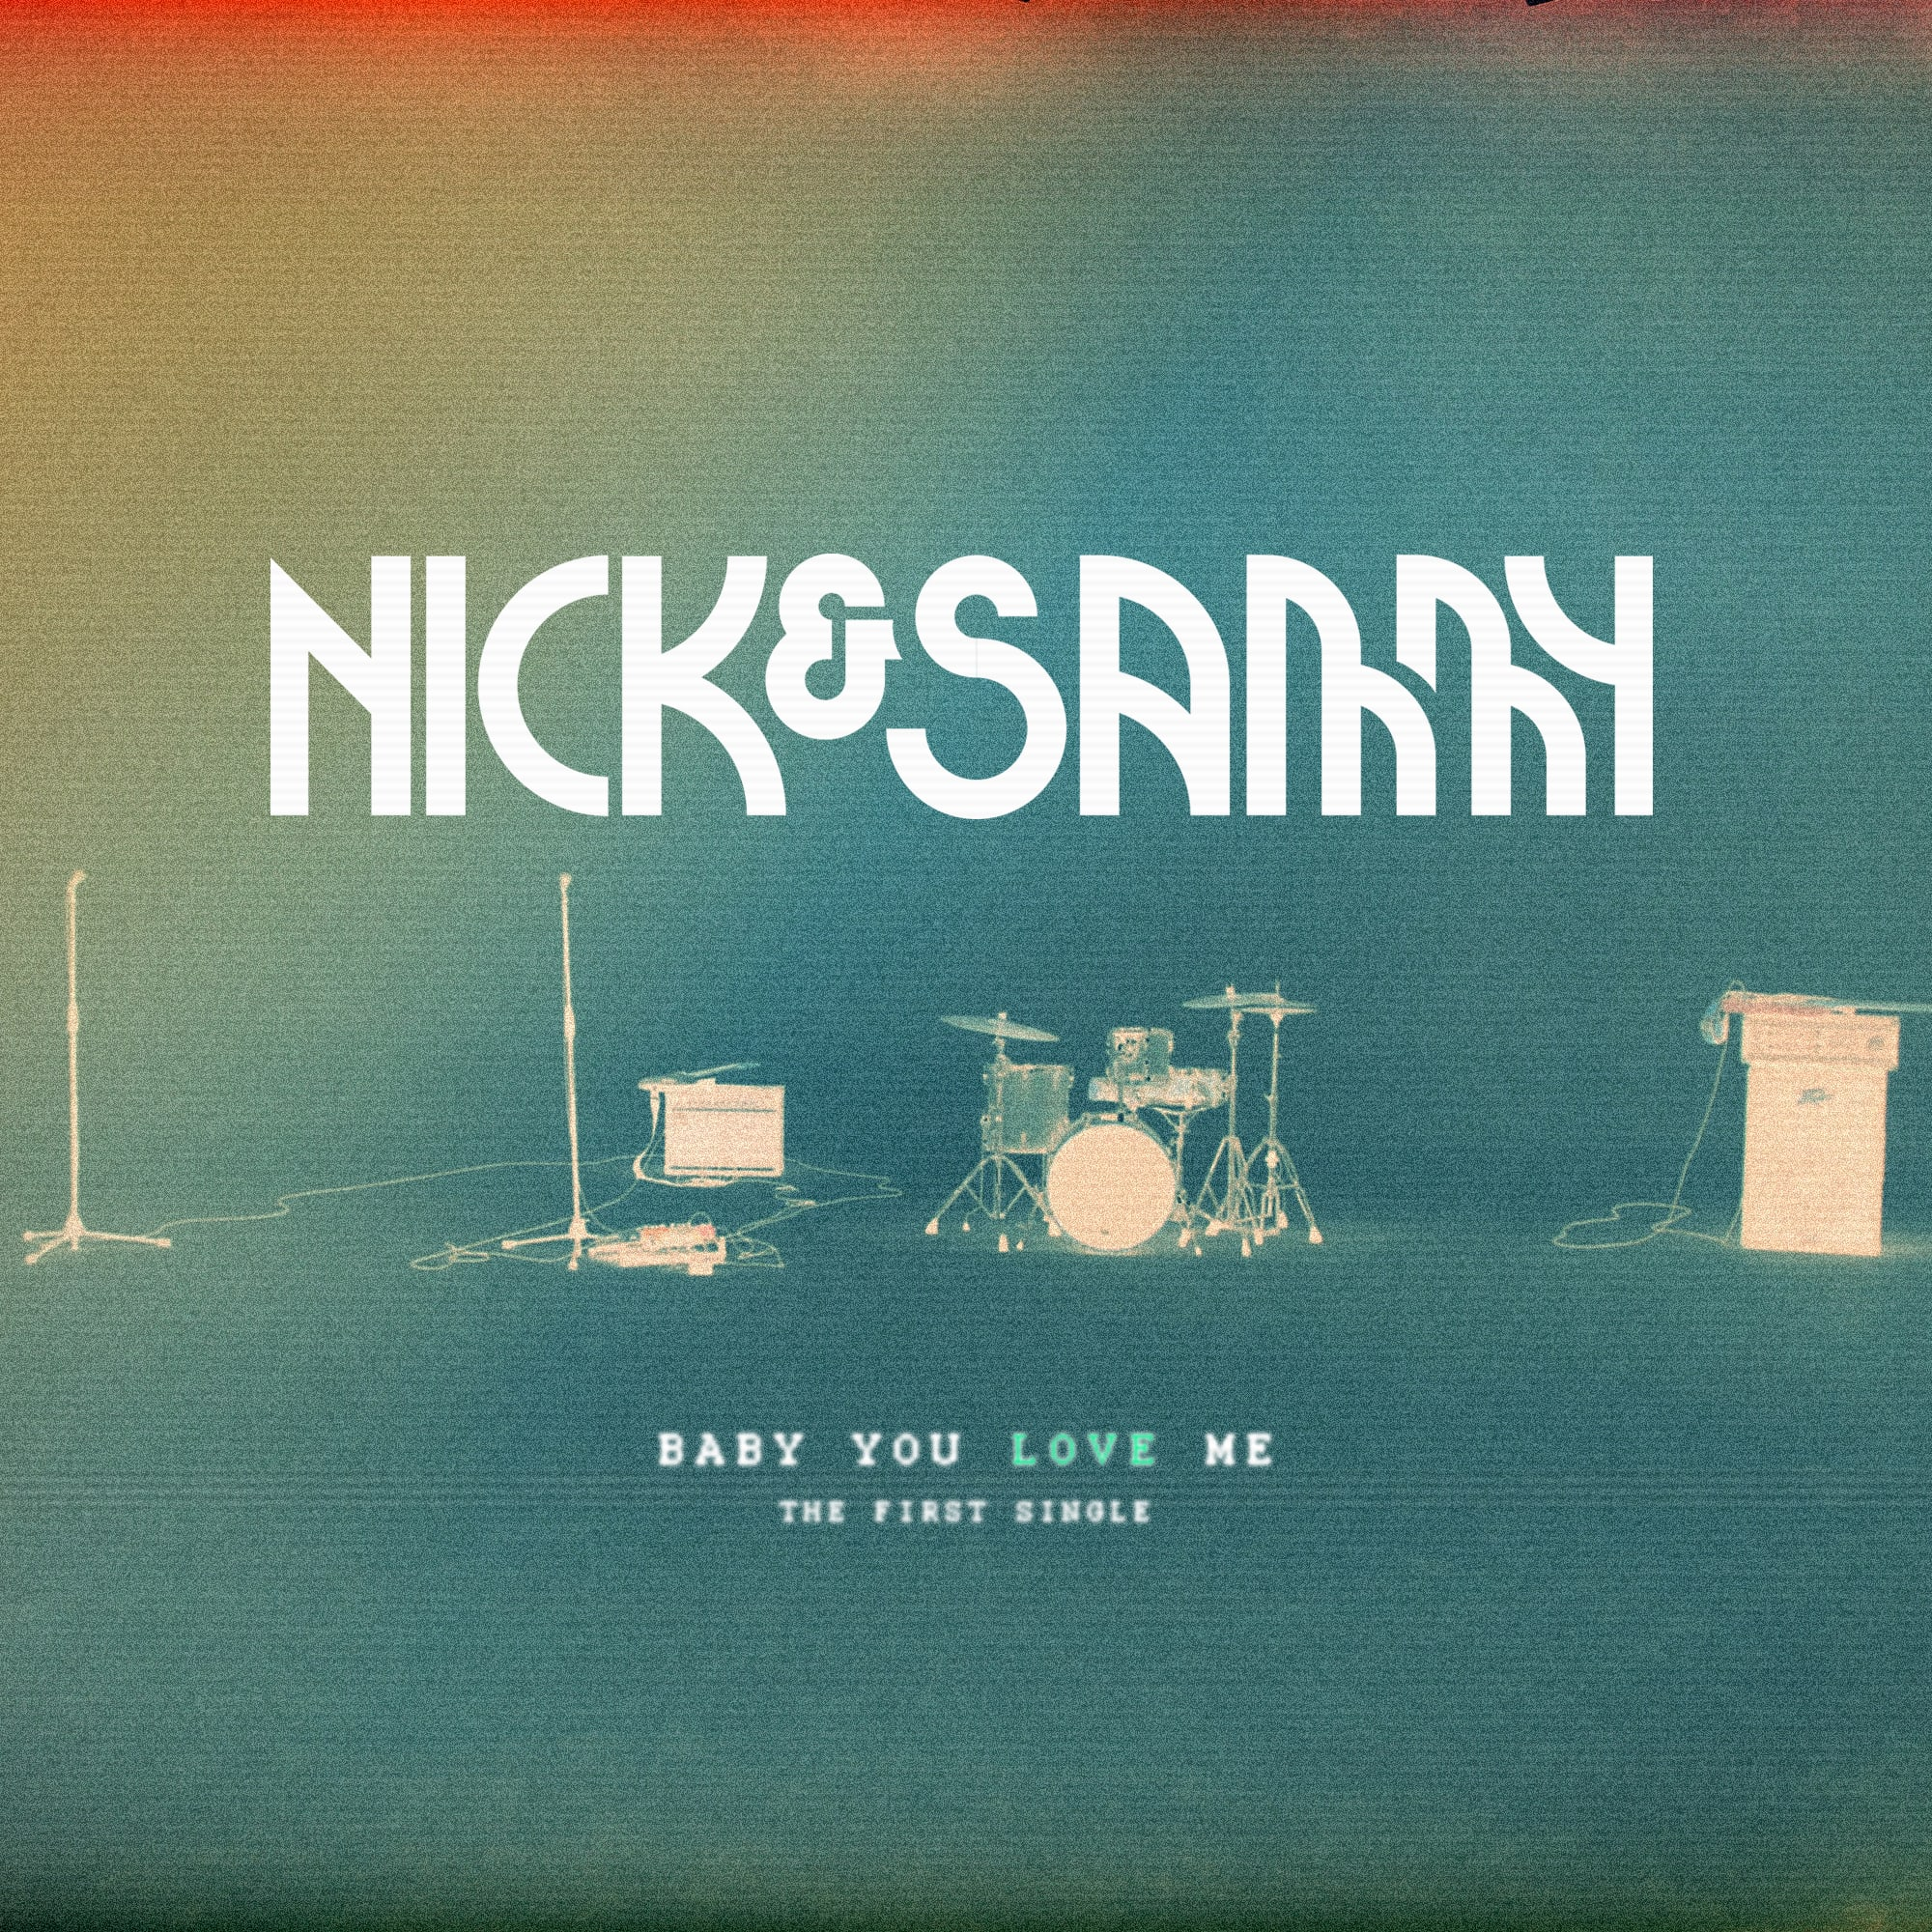 "Exclusiva: El dúo de K-pop Nick & Sammy debuta con el single autoproducido ""Baby You Love Me"" y un MV con versión en inglés"